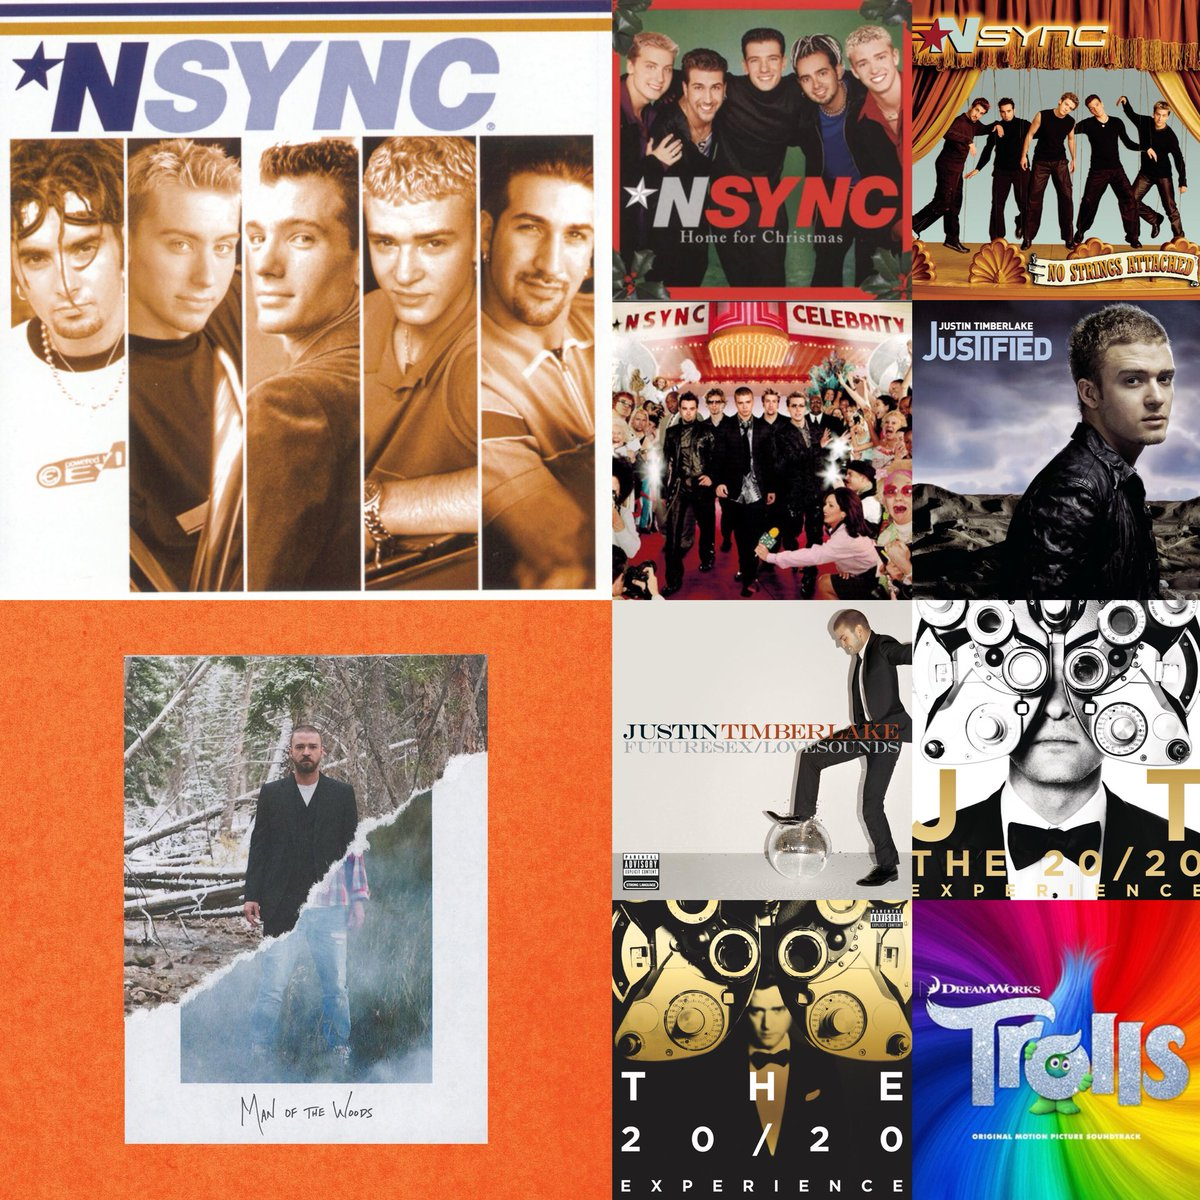 845 am 25 may 2018 - Nsync Christmas Album